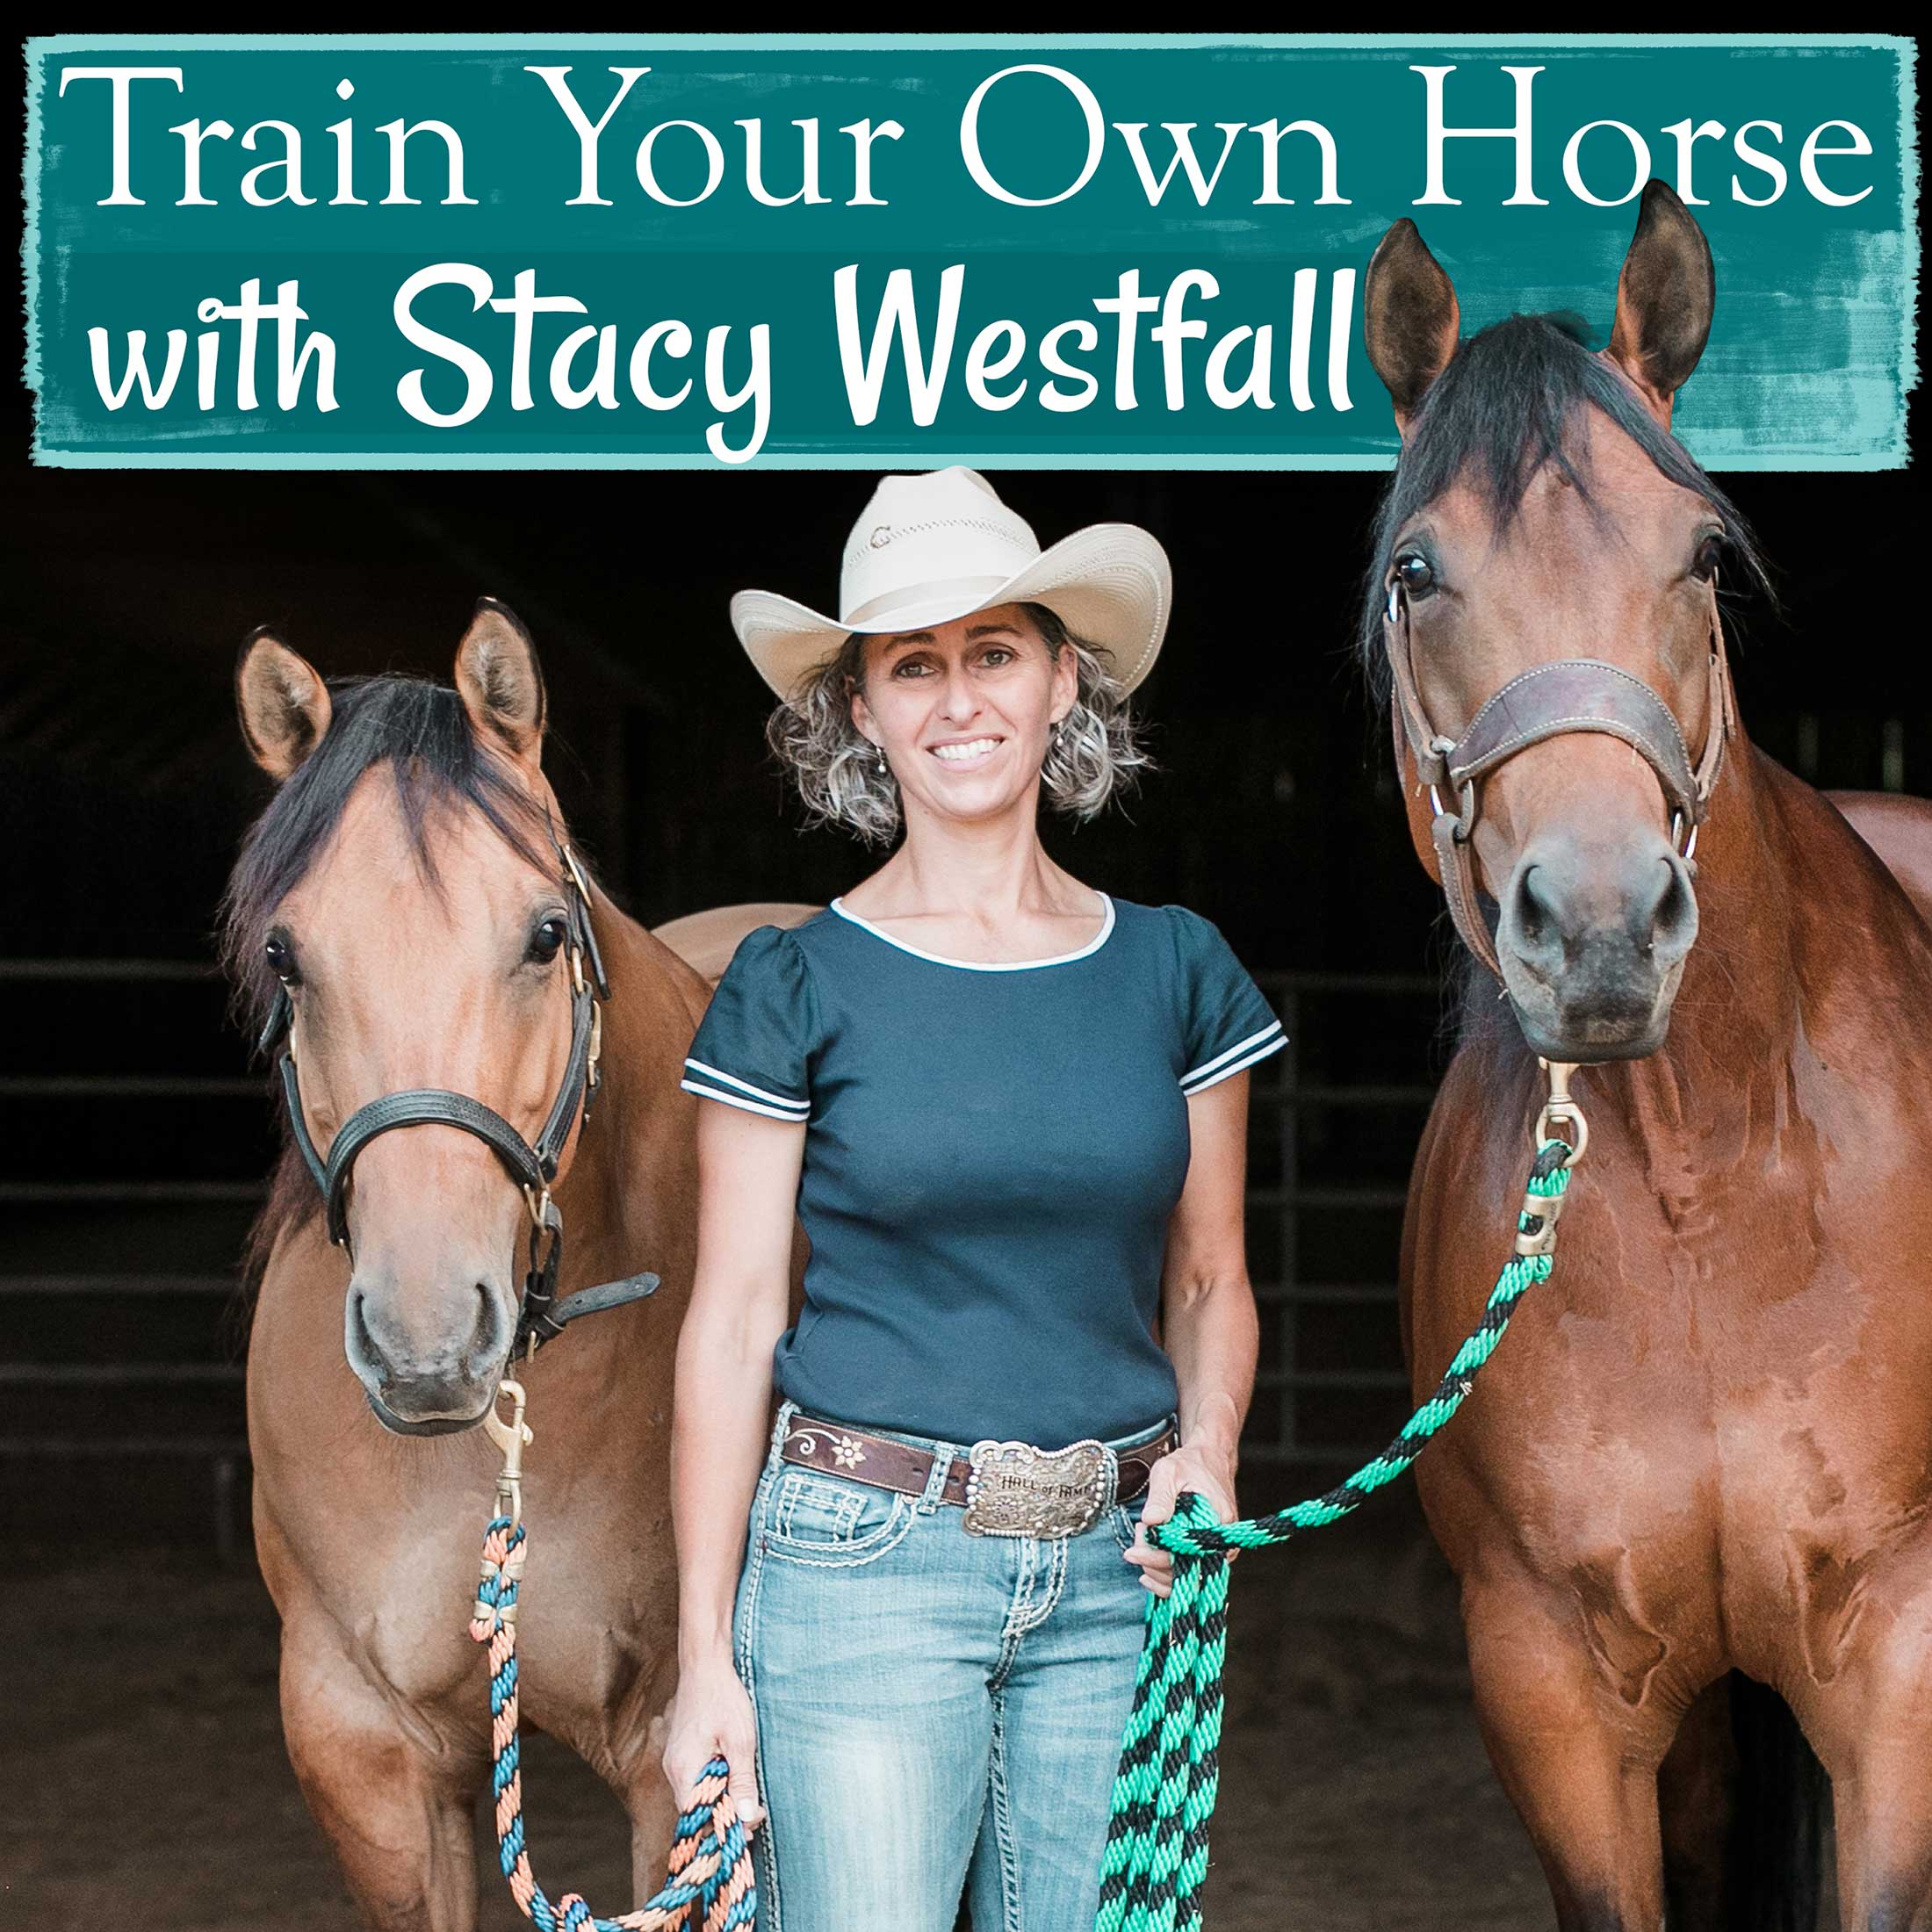 Train Your Own Horse with Stacy Westfall